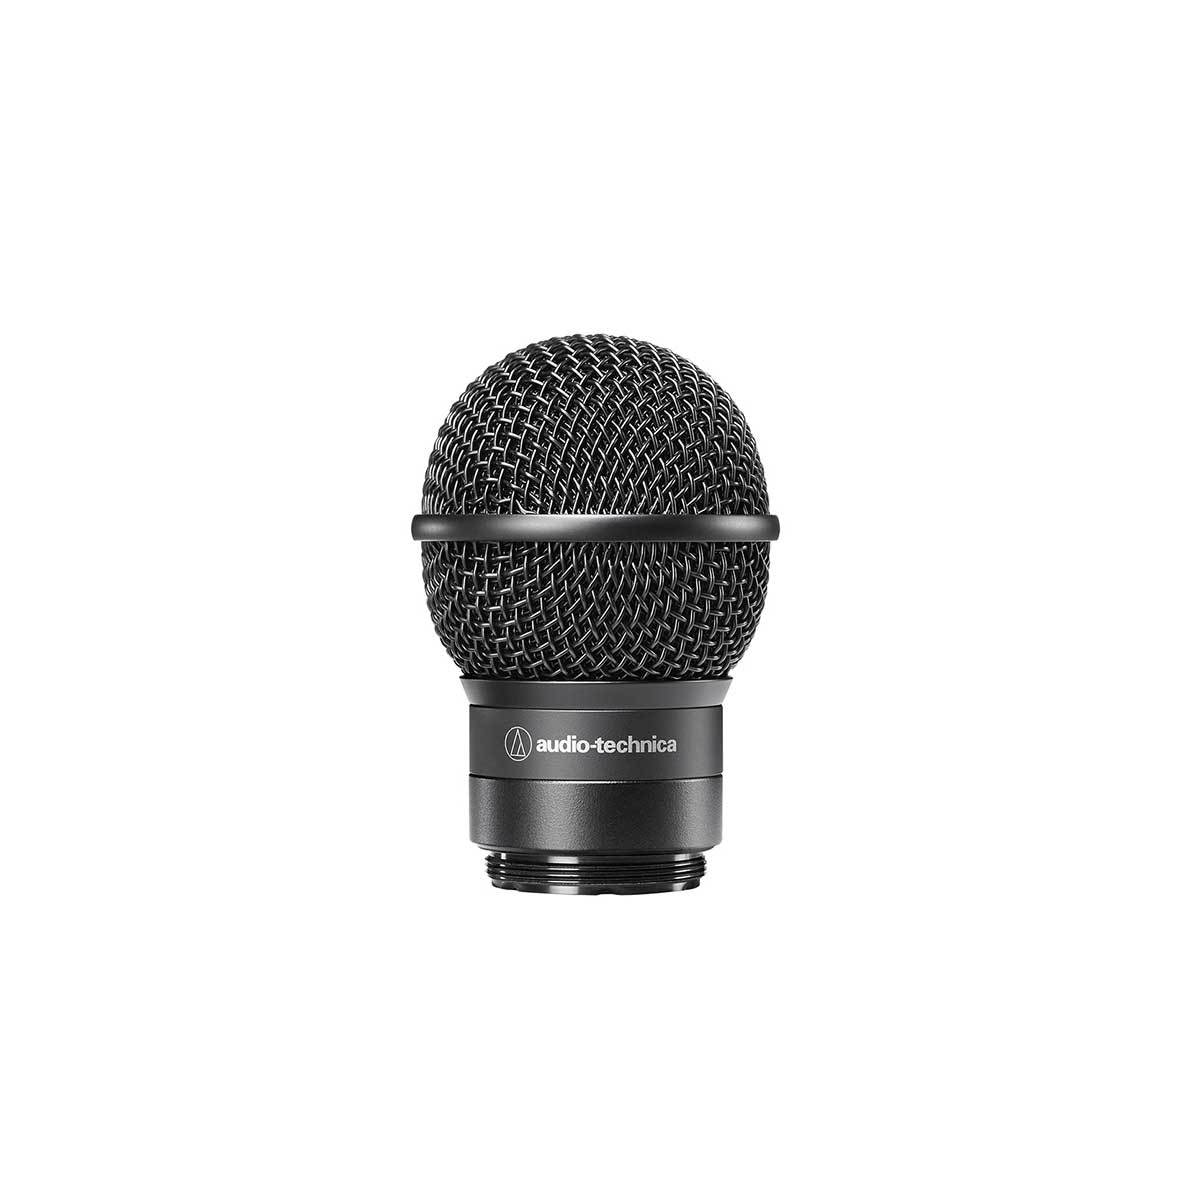 Wireless Systems - Audio-Technica ATW-C510 Interchangeable Cardioid Dynamic Microphone Capsule